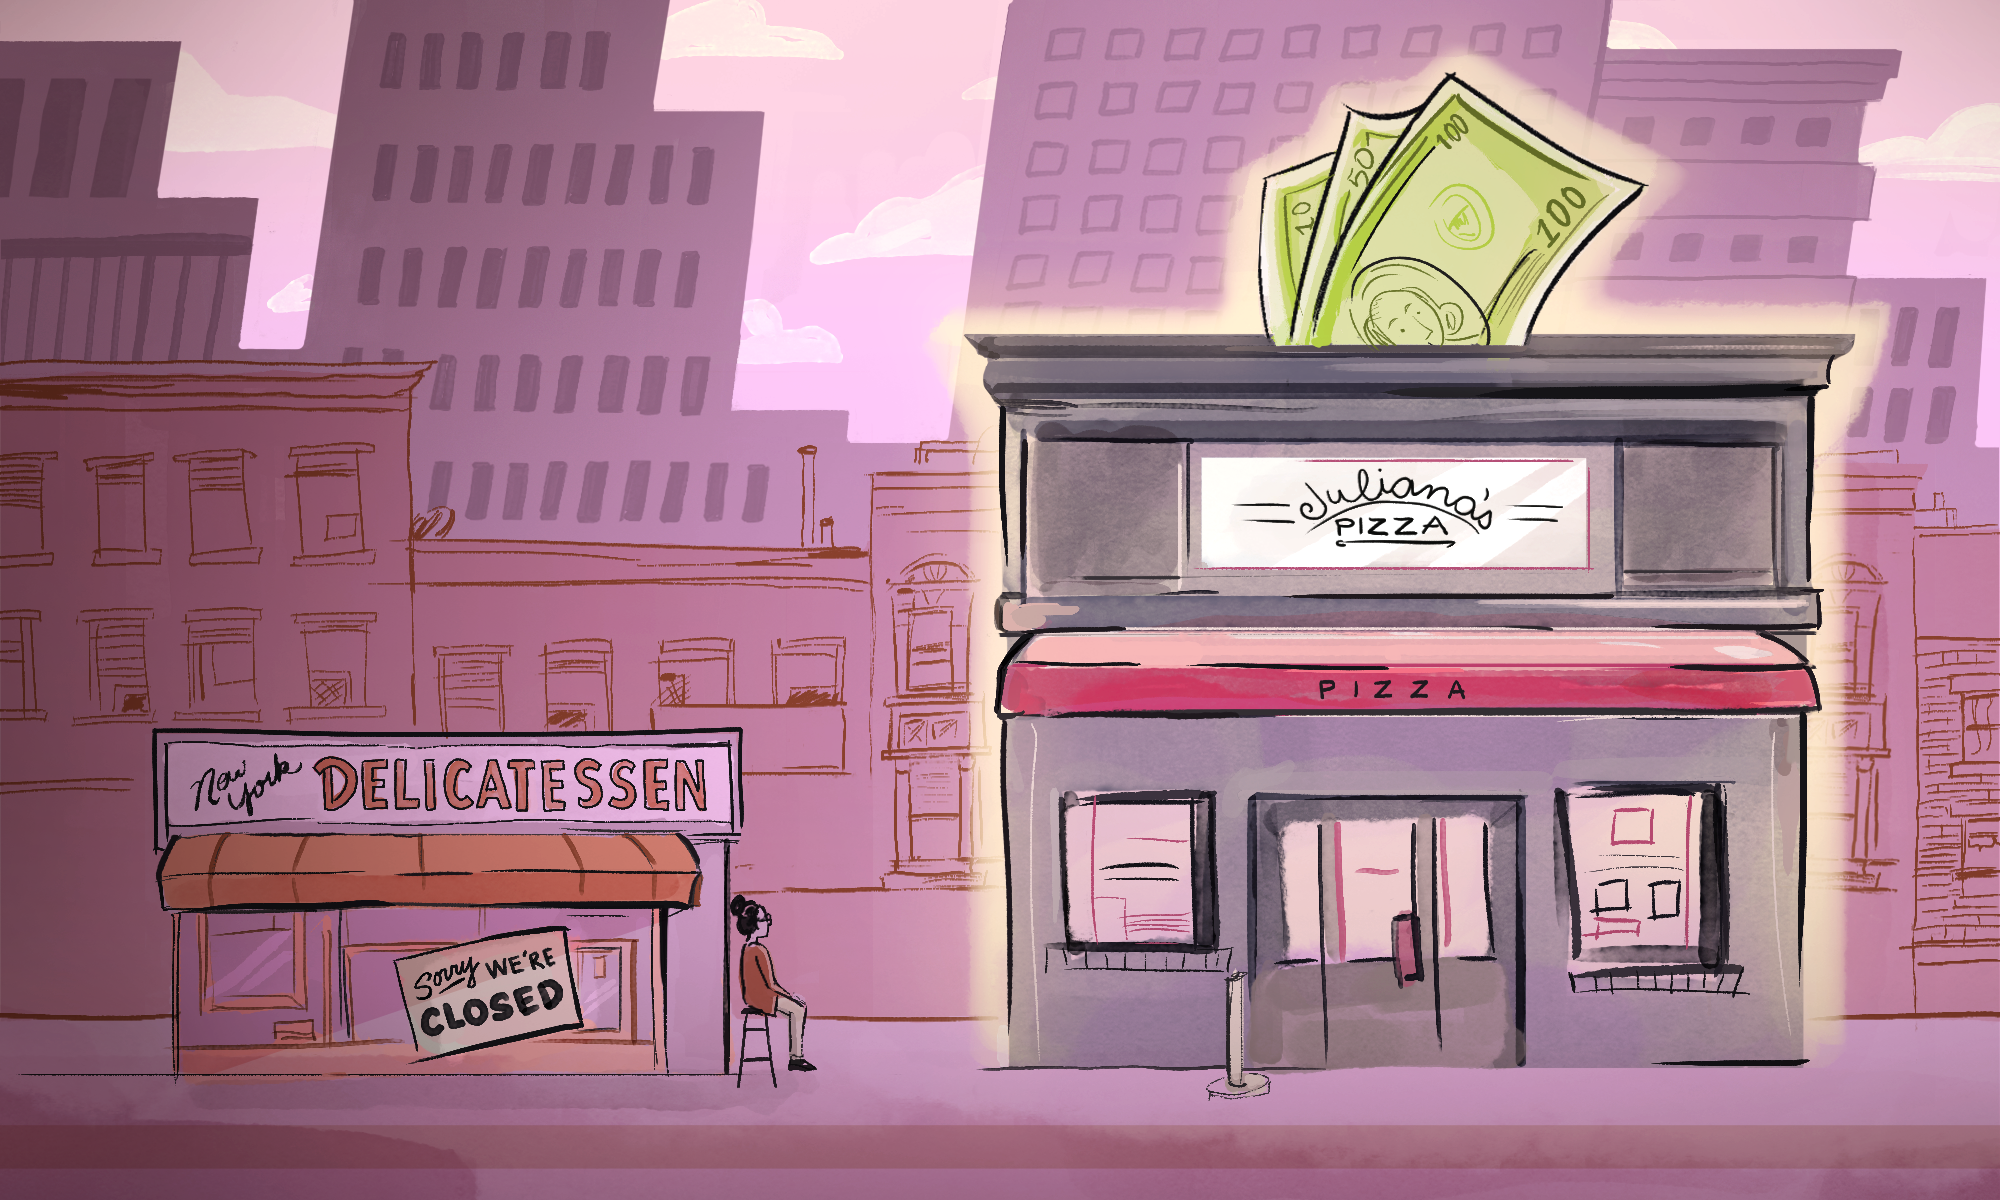 Illustration of two buildings: One small deli that's out of the spotlight, and the other a bigger pizzeria place with dollar bills going into its roof like a piggy bank.